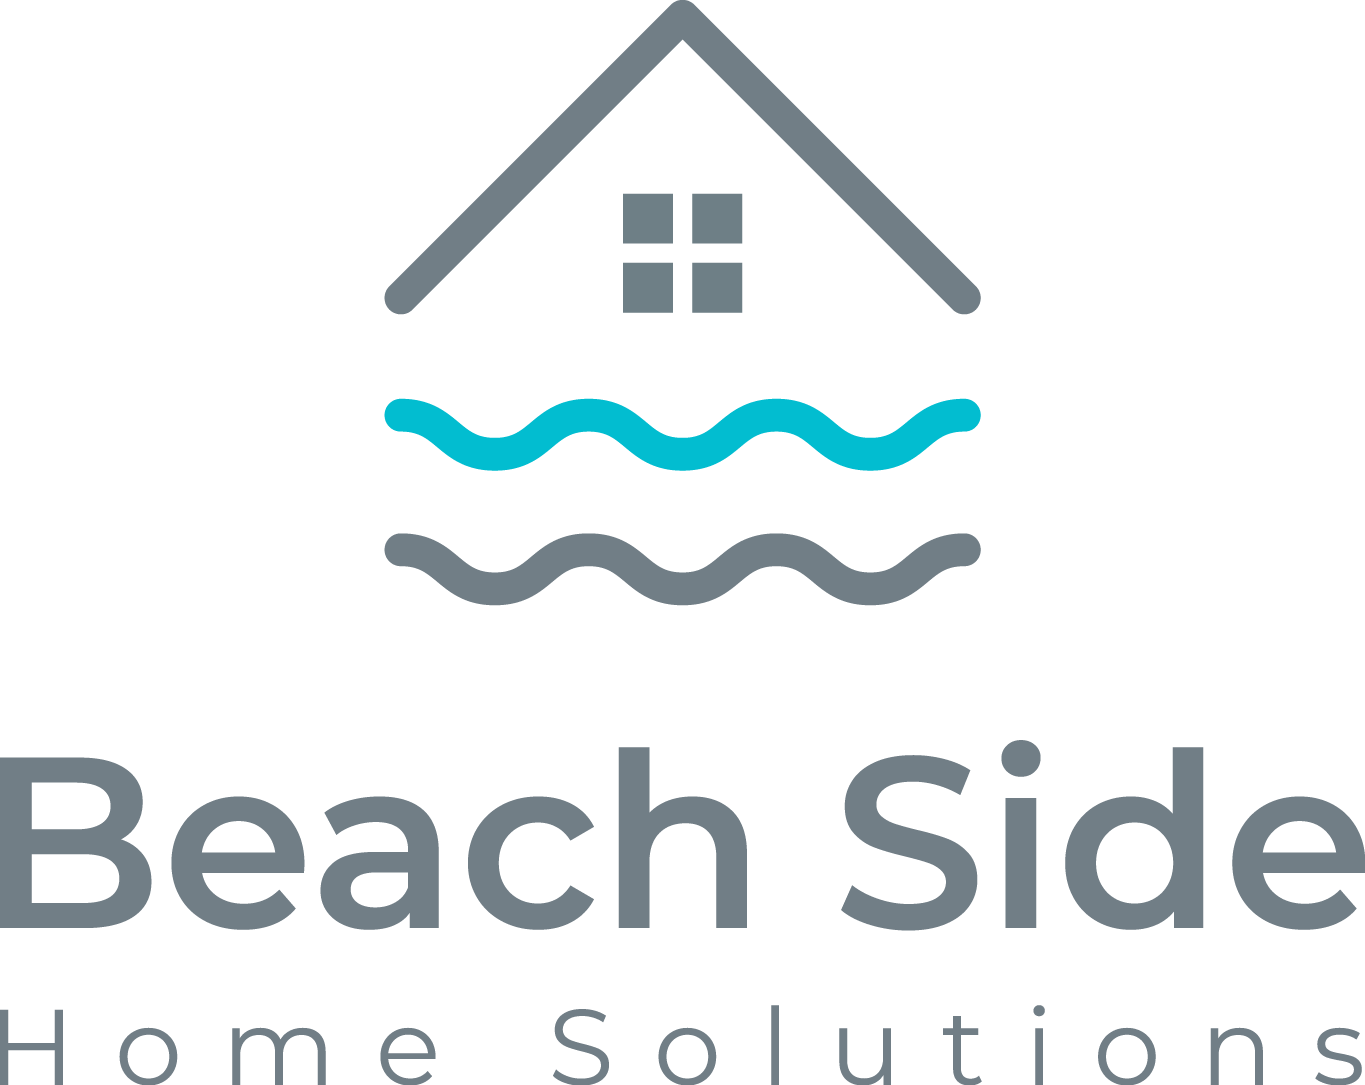 Beach Side Home Solutions